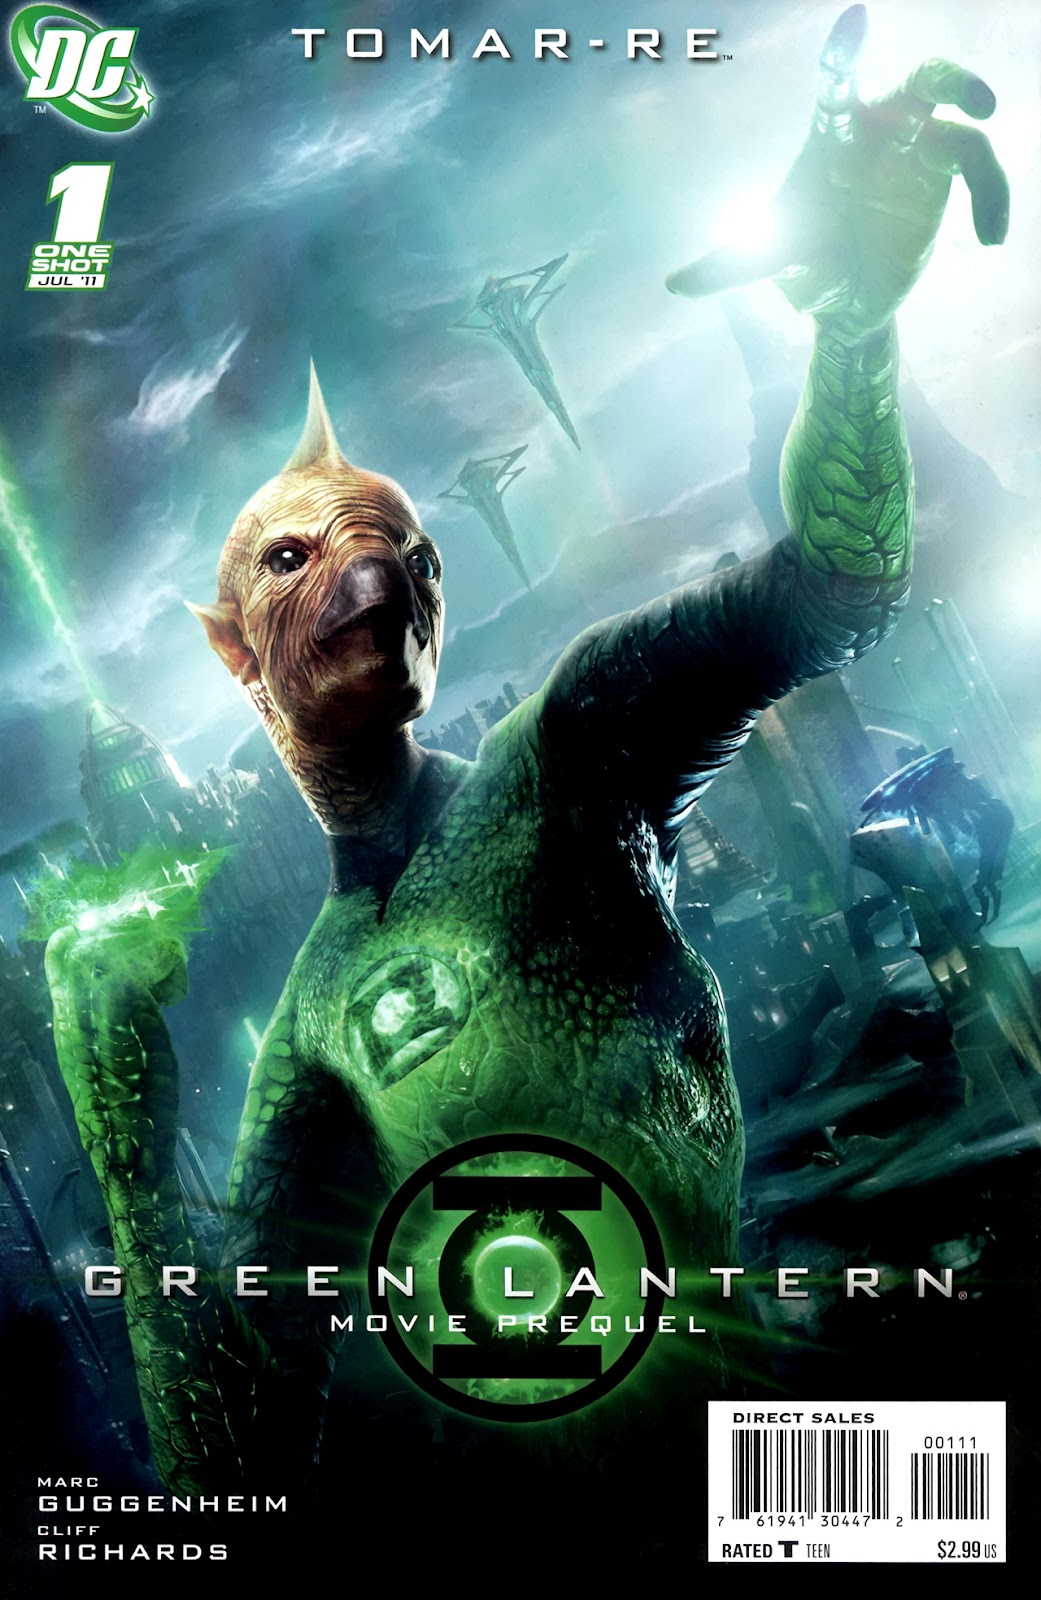 Read online Green Lantern Movie Prequel: Tomar-Re comic -  Issue # Full - 1